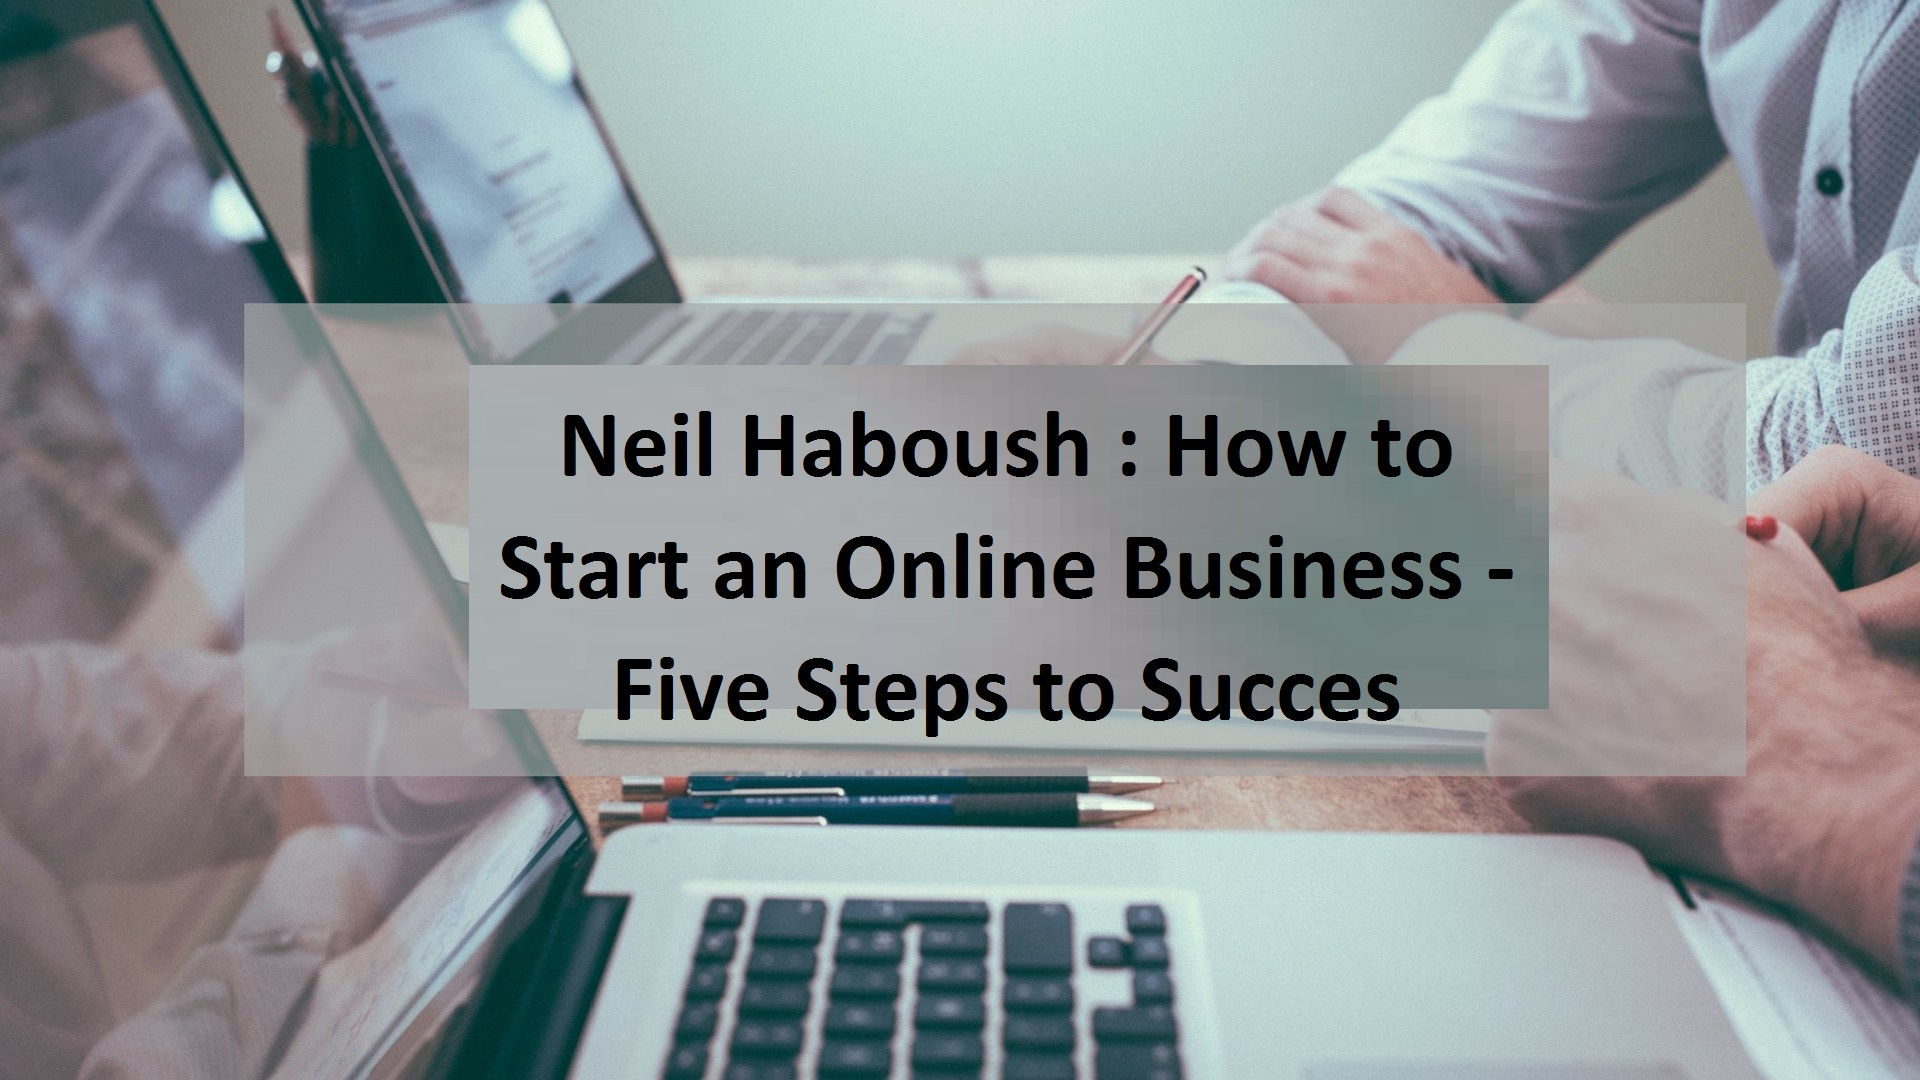 Neil Haboush Online Business Expert